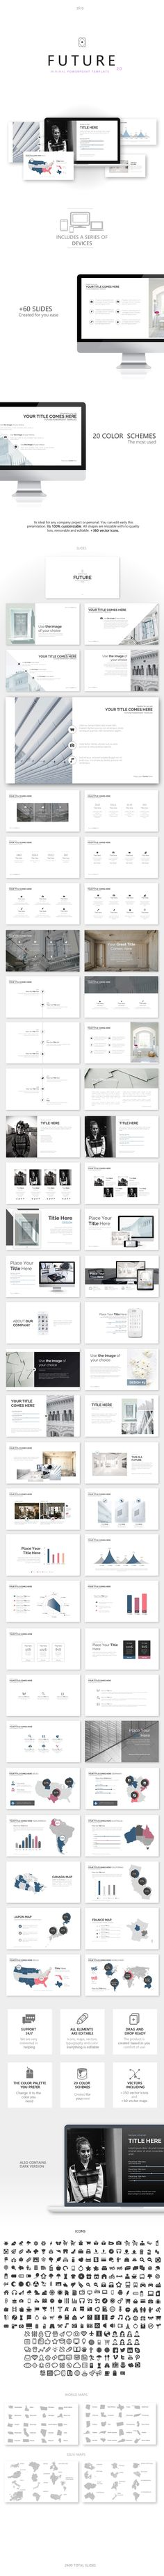 Future 2.0 - Minimal Powerpoint Template - PowerPoint Templates Presentation Templates